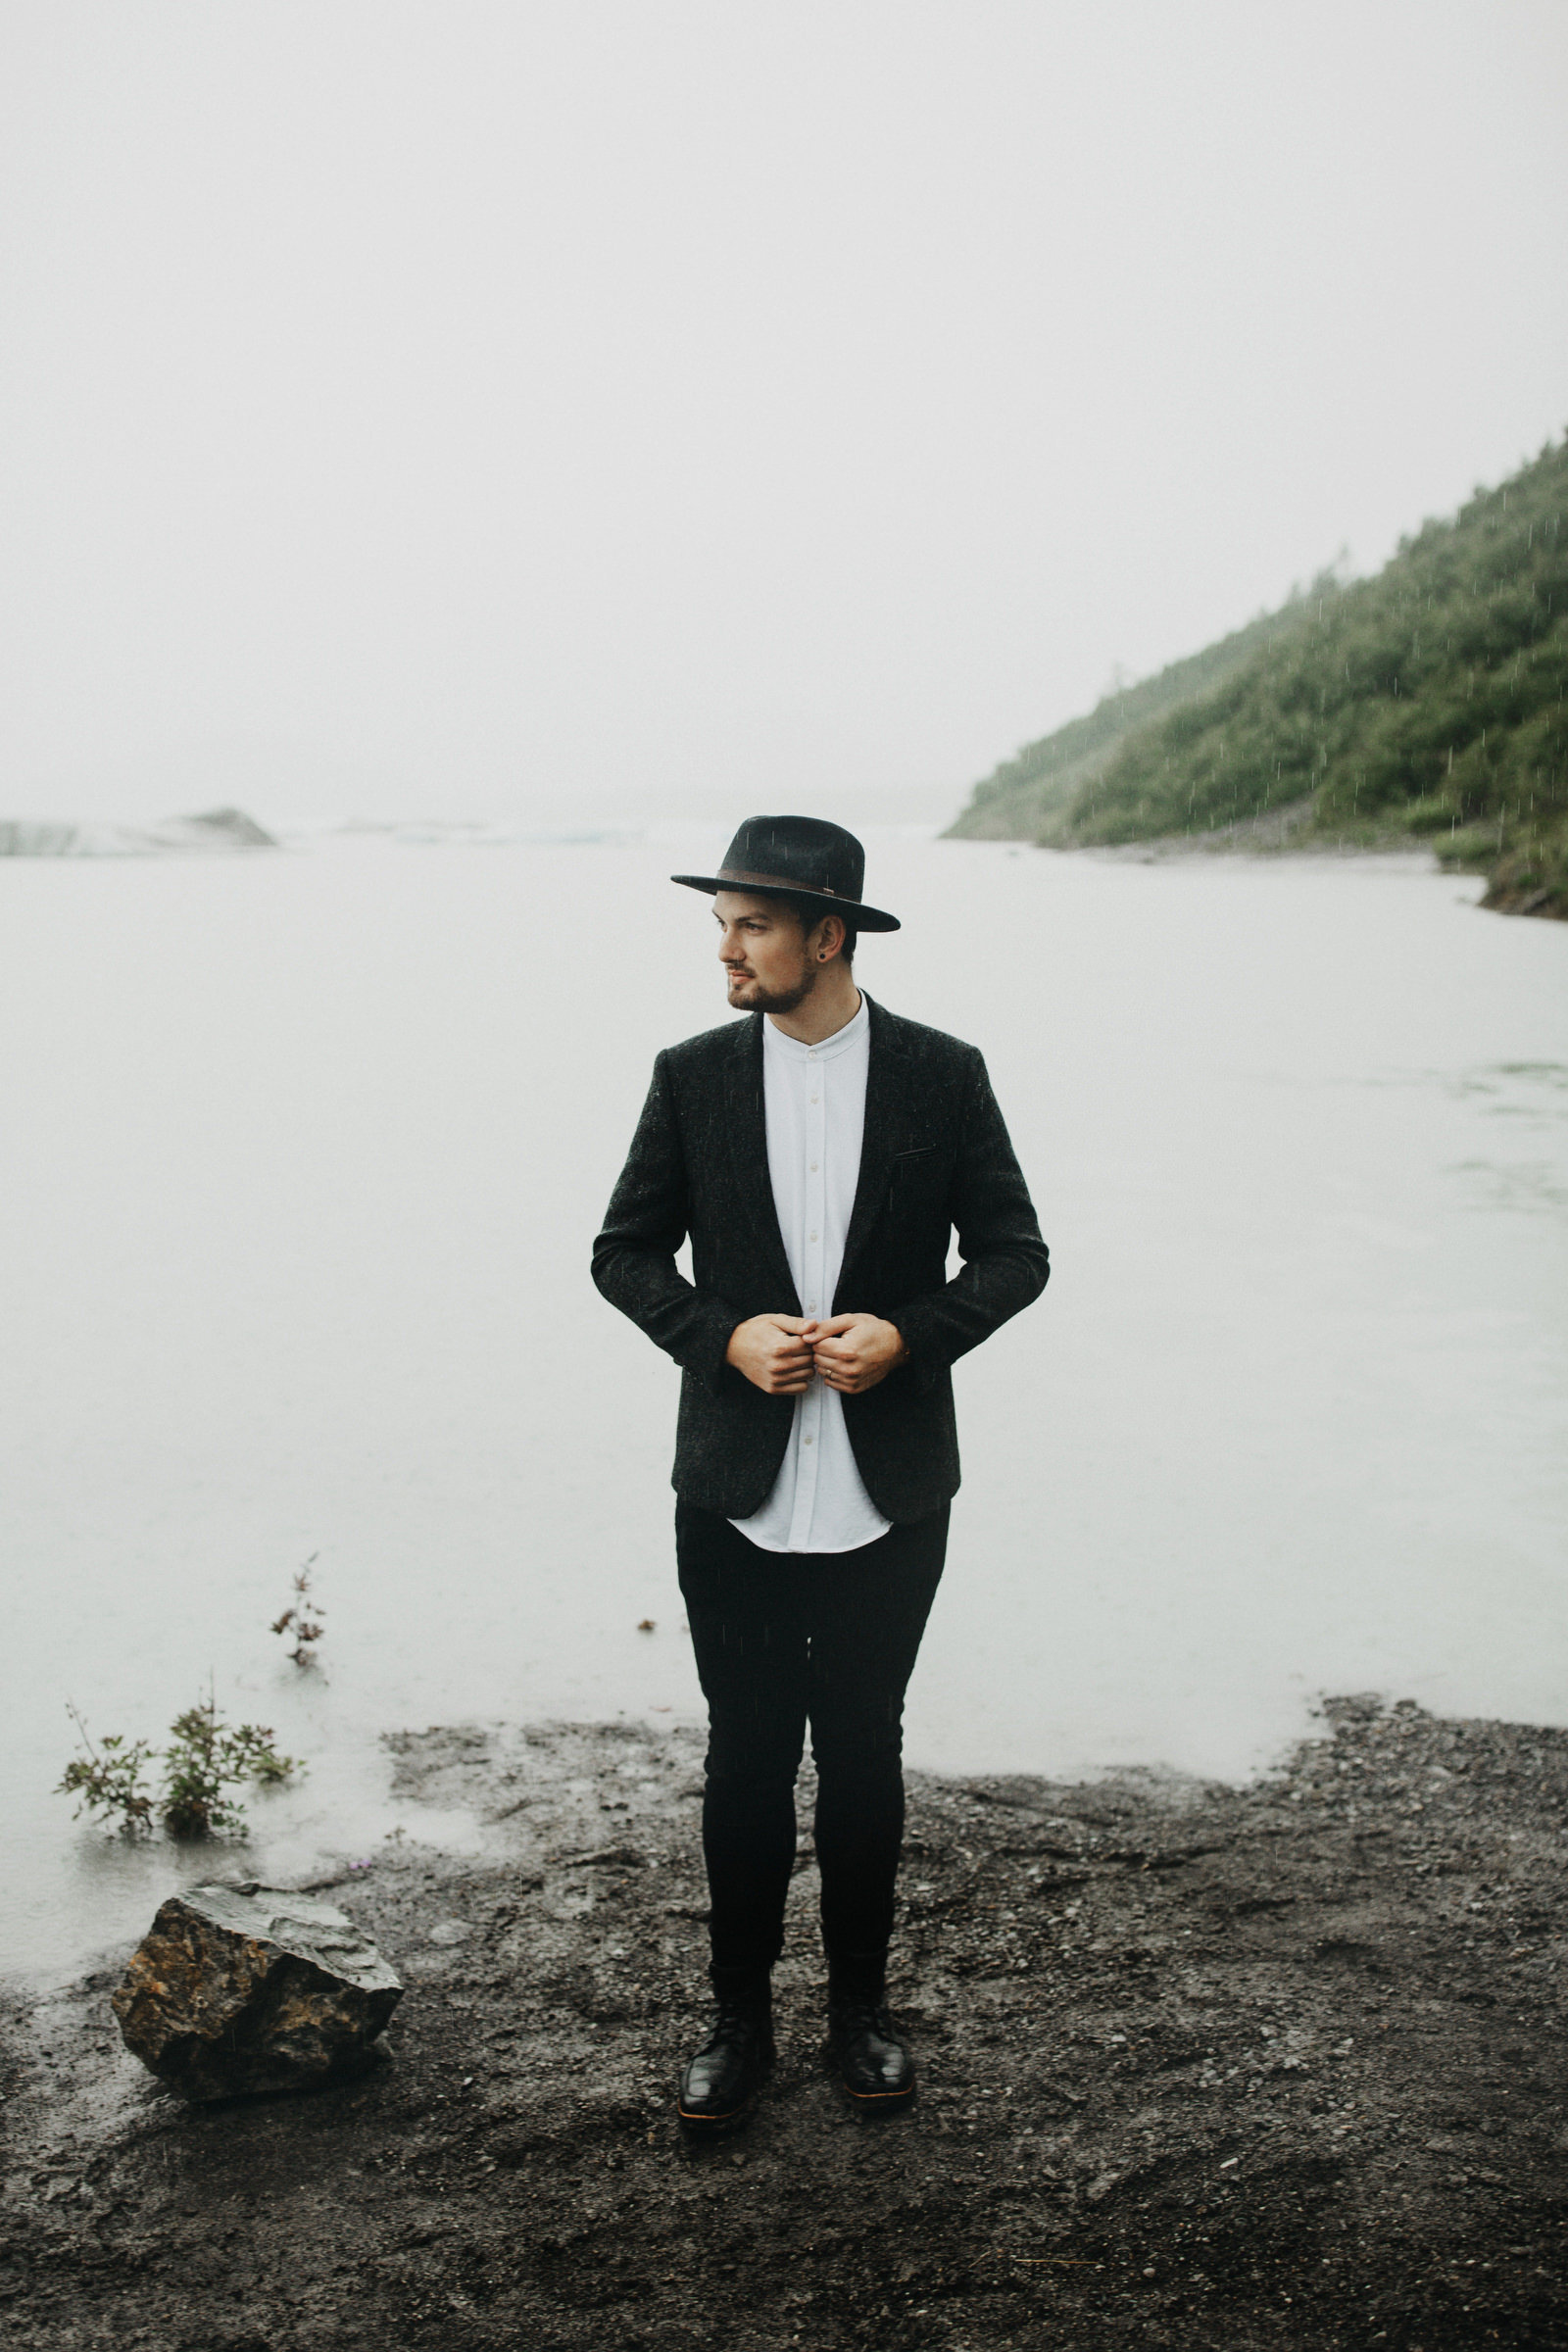 athena-and-camron-alaska-elopement-wedding-inspiration-india-earl-athena-grace-glacier-lagoon-wedding99